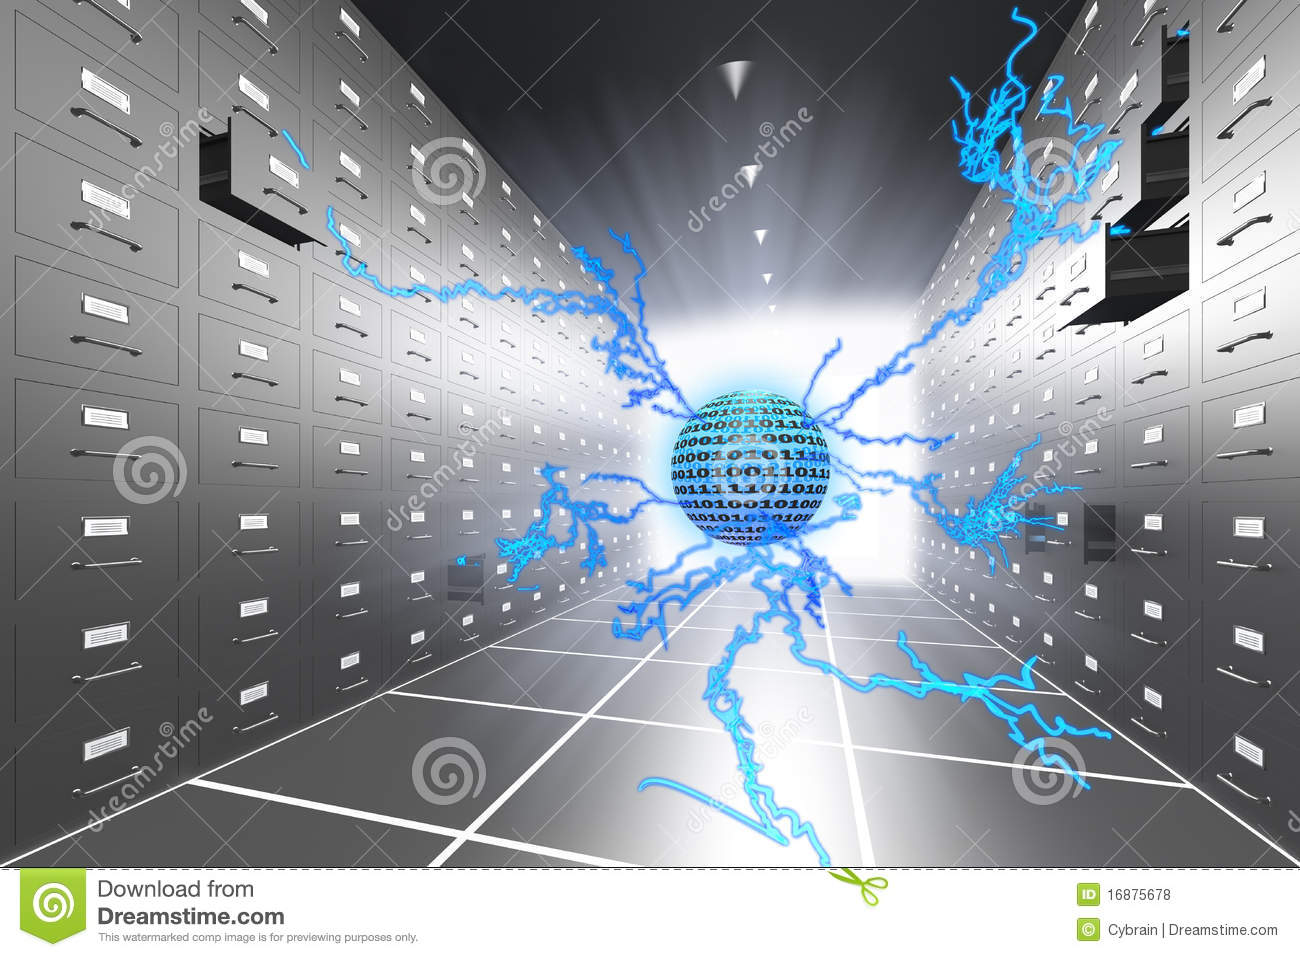 Computer Virus Royalty Free Stock Photos Image 16875678